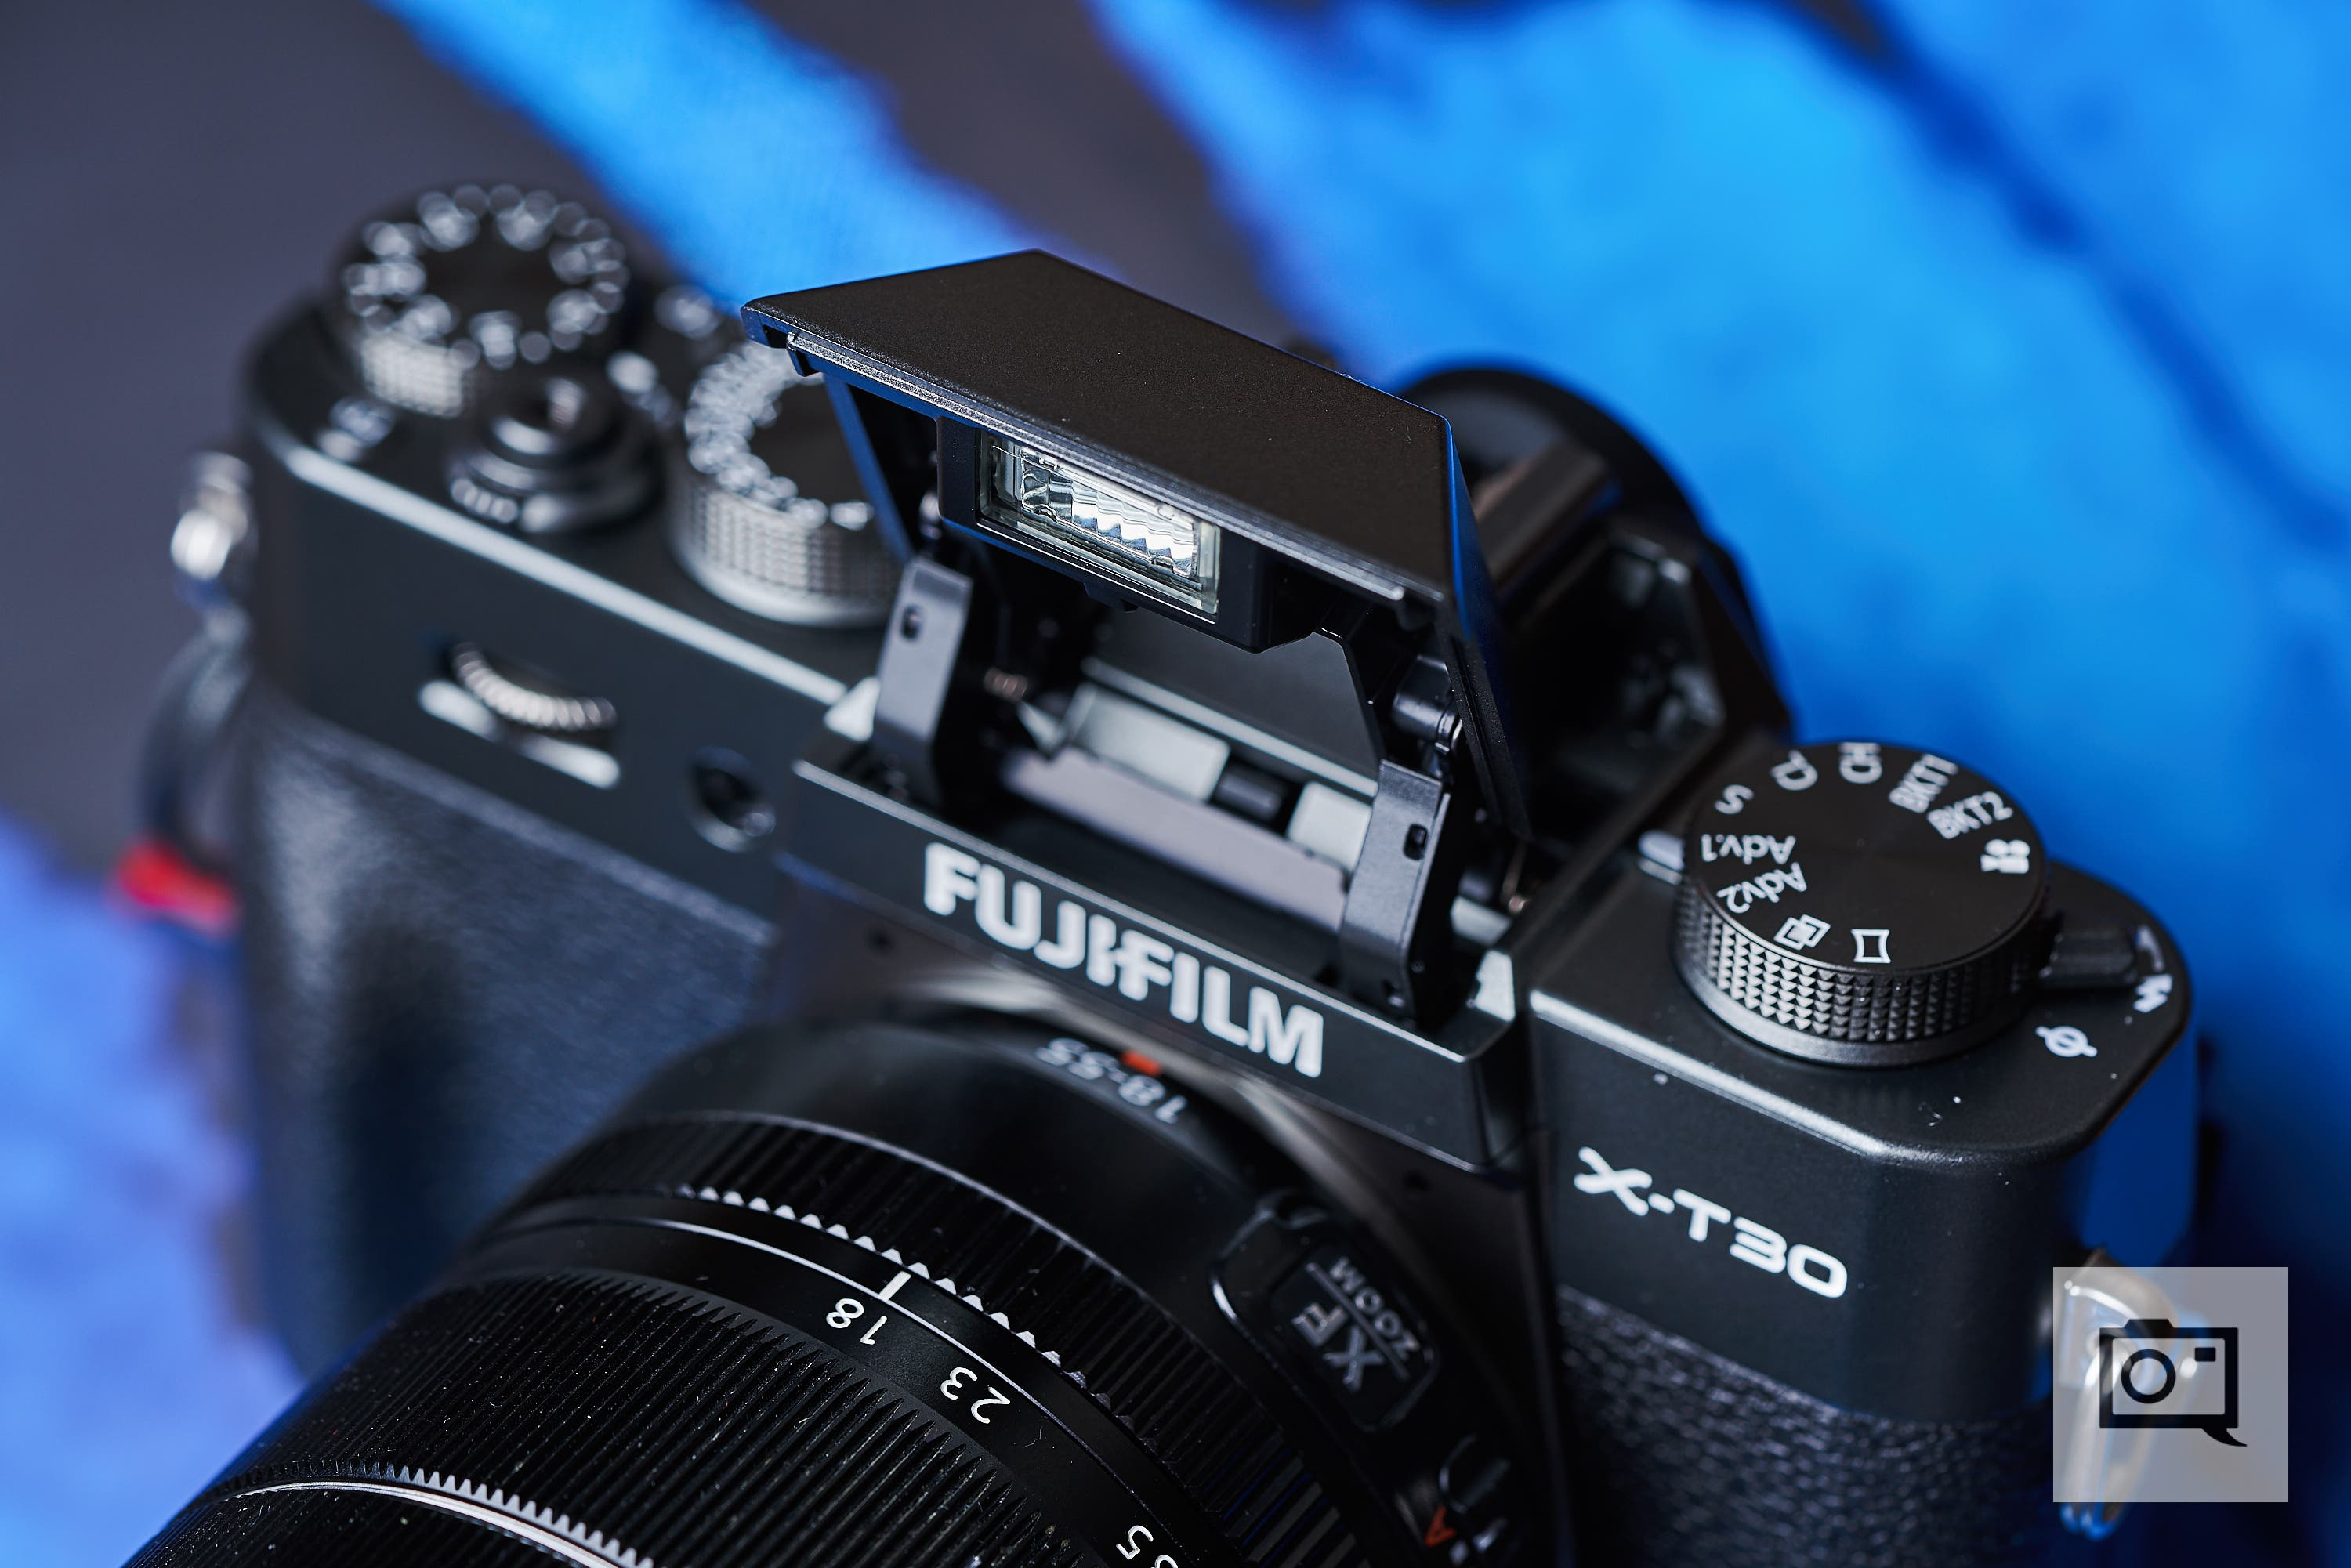 The Fujifilm XT3 and XT30 Have Great Rebates Right Now